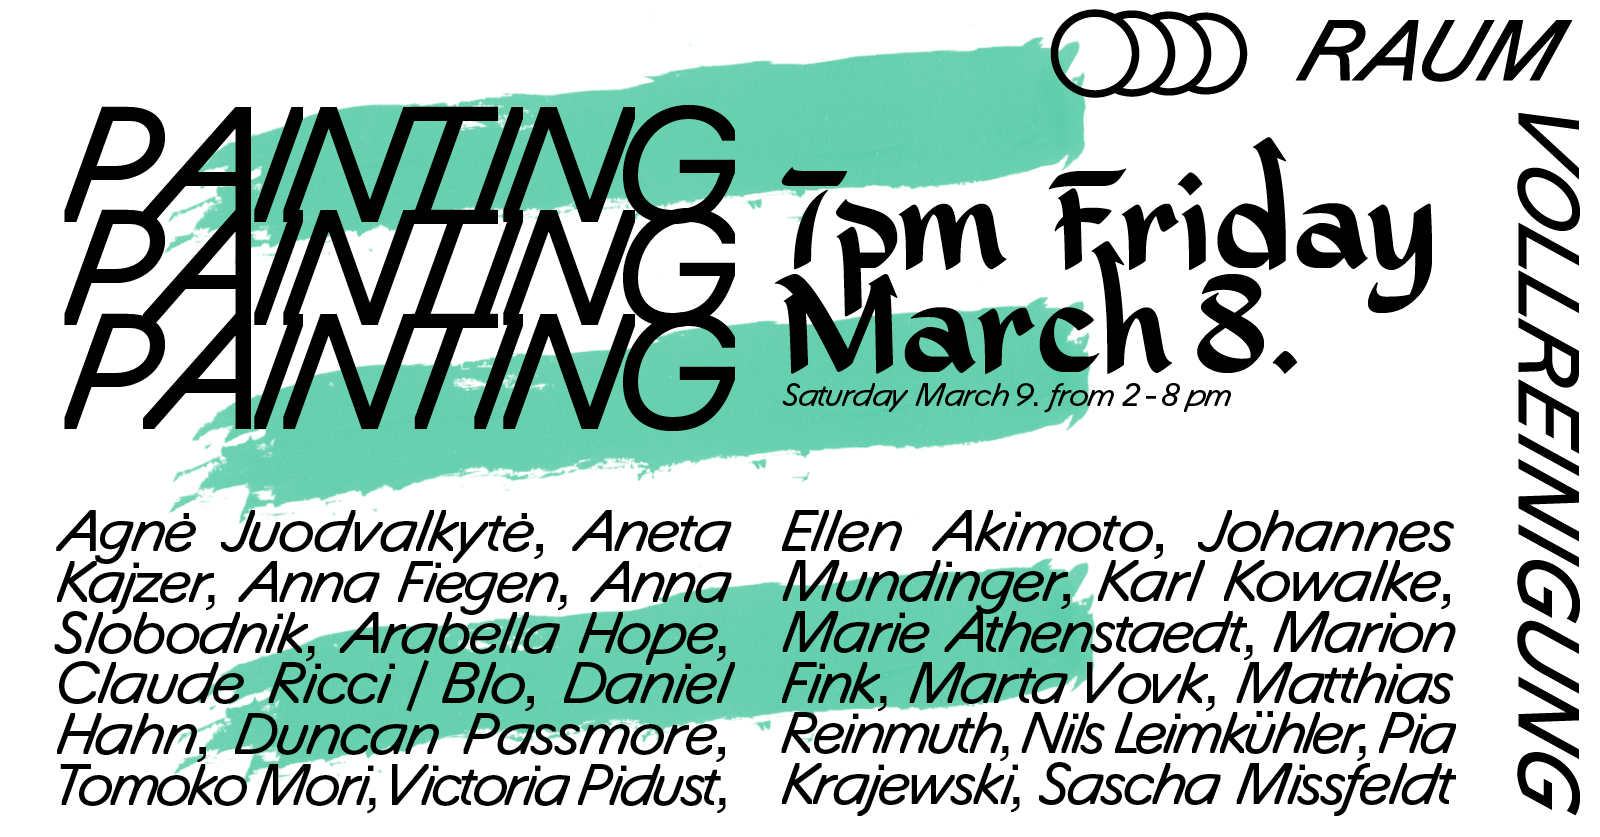 Painting Painting Painting exhibtion flier